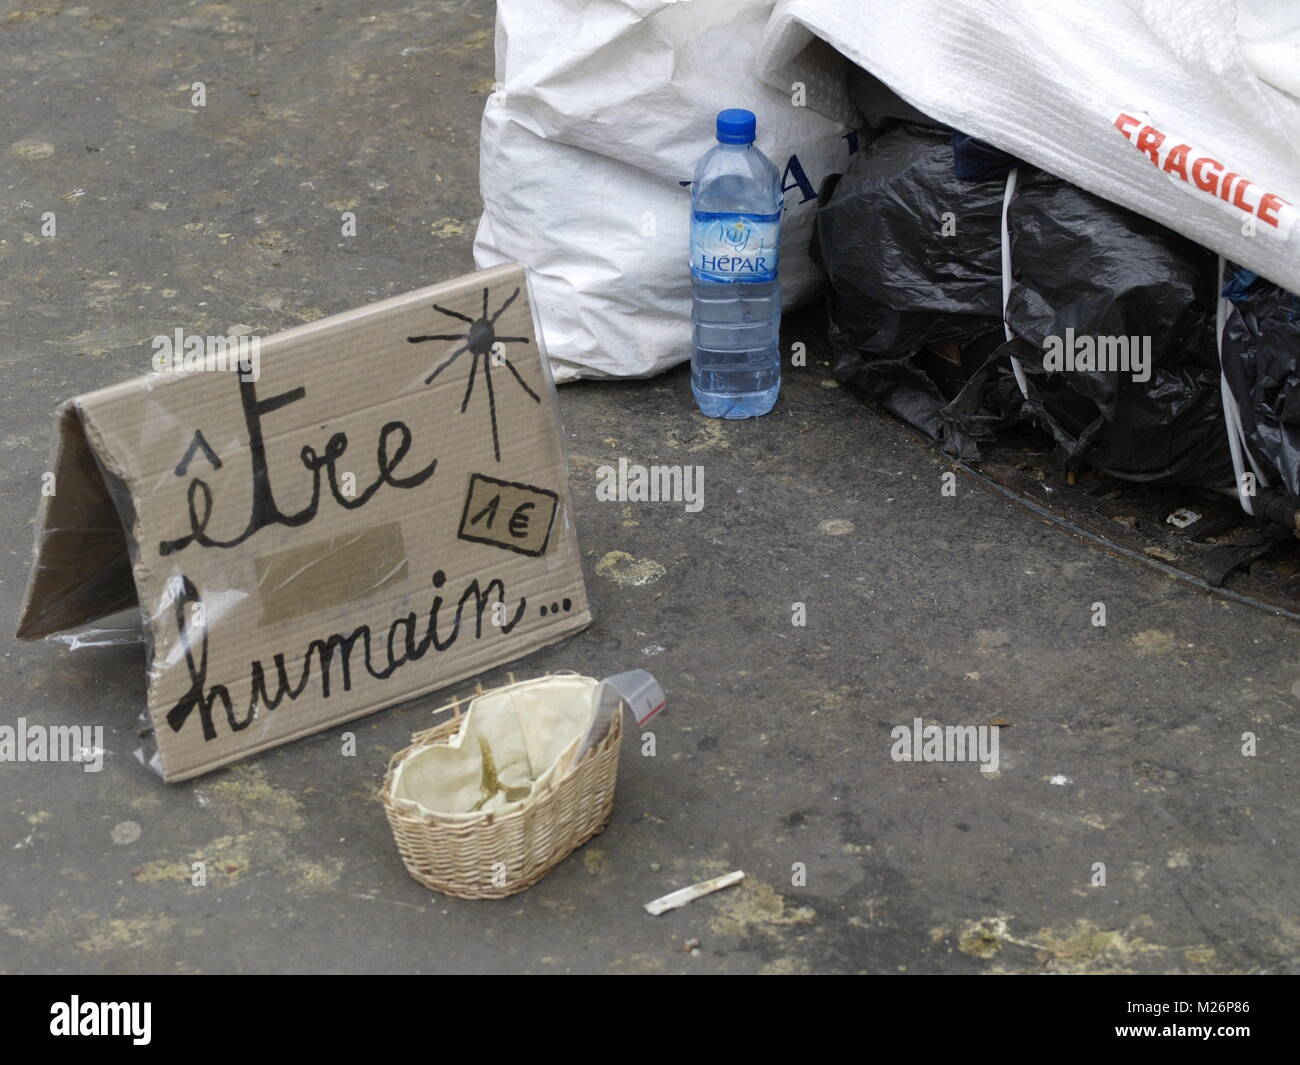 PARIS HOMELESS - ETRE HUMAIN ... - A MESSAGE ASKING SOME HELP NEAR THE SPOT OF A HOMELESS PERSON - PARIS MISERY - Stock Image